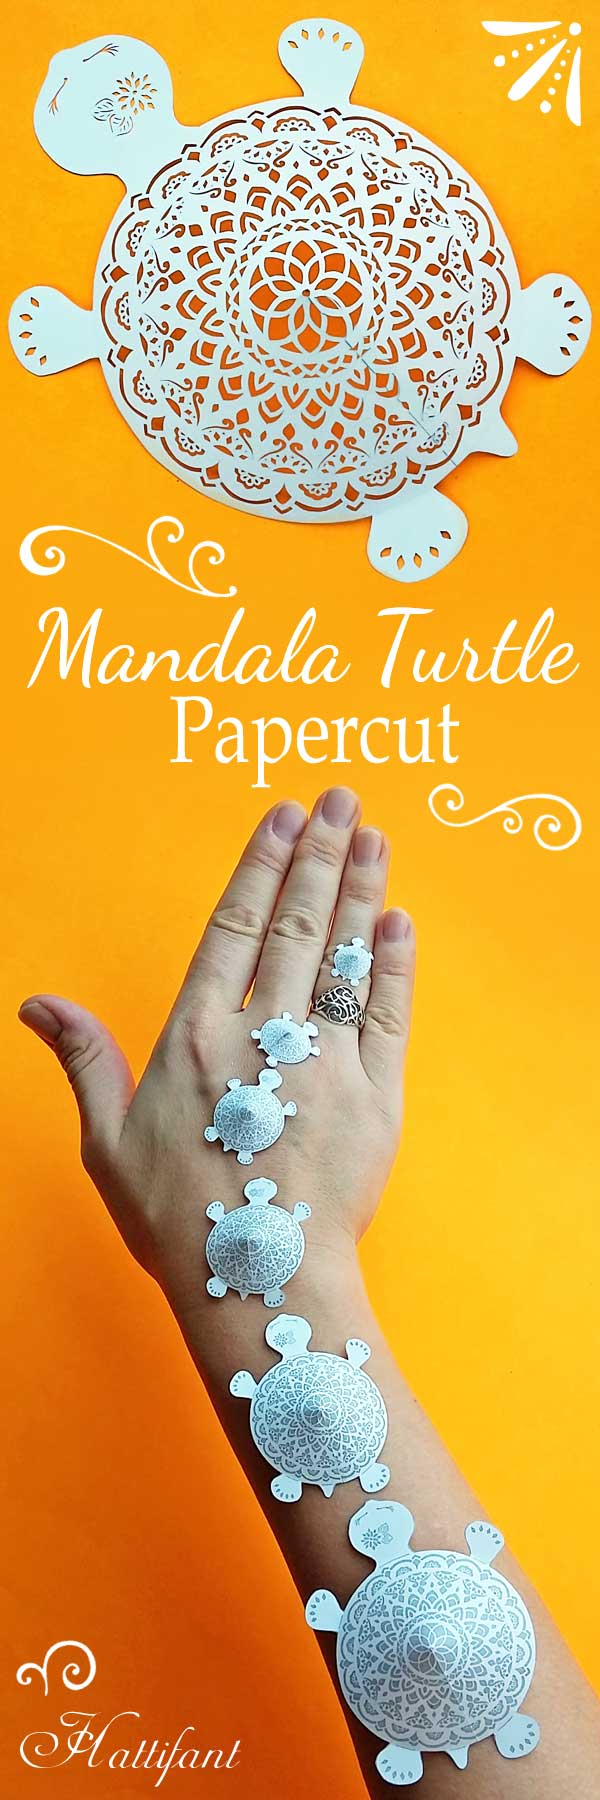 Hattifant's Mandala Turtle to papercut a papercraft paperart printable to DIY